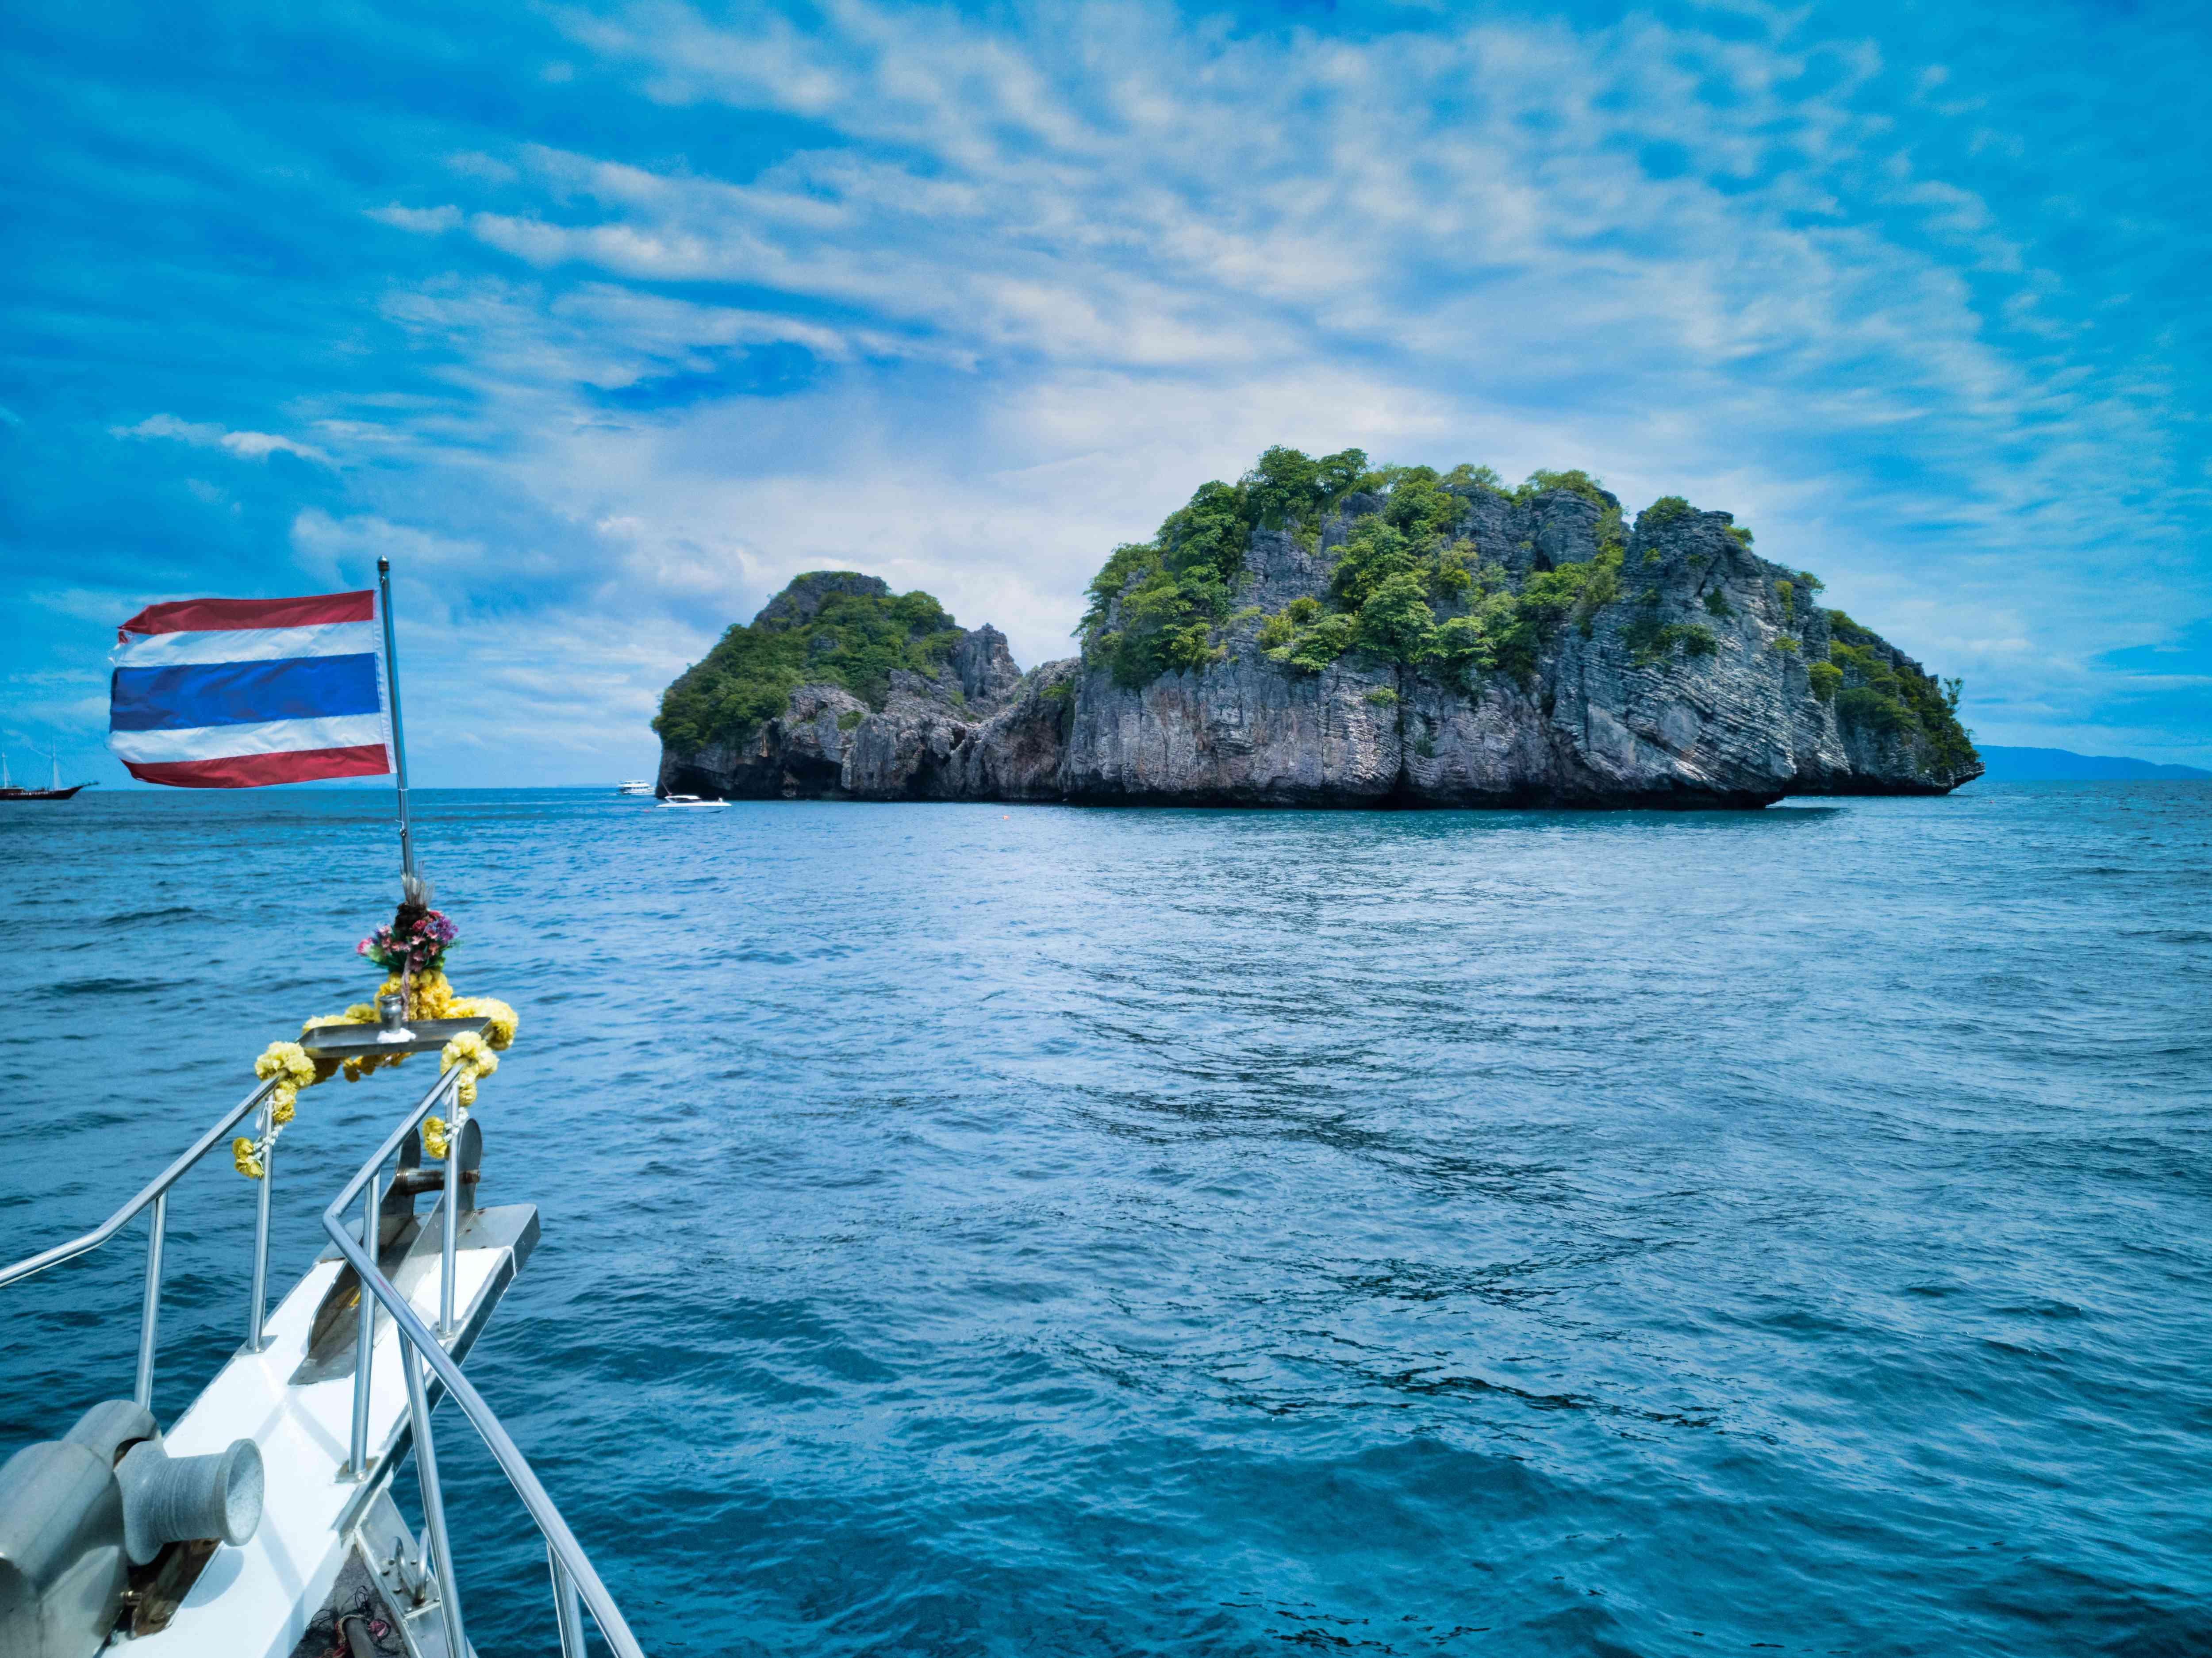 A dive boat approaches Koh Haa Island in Thailand